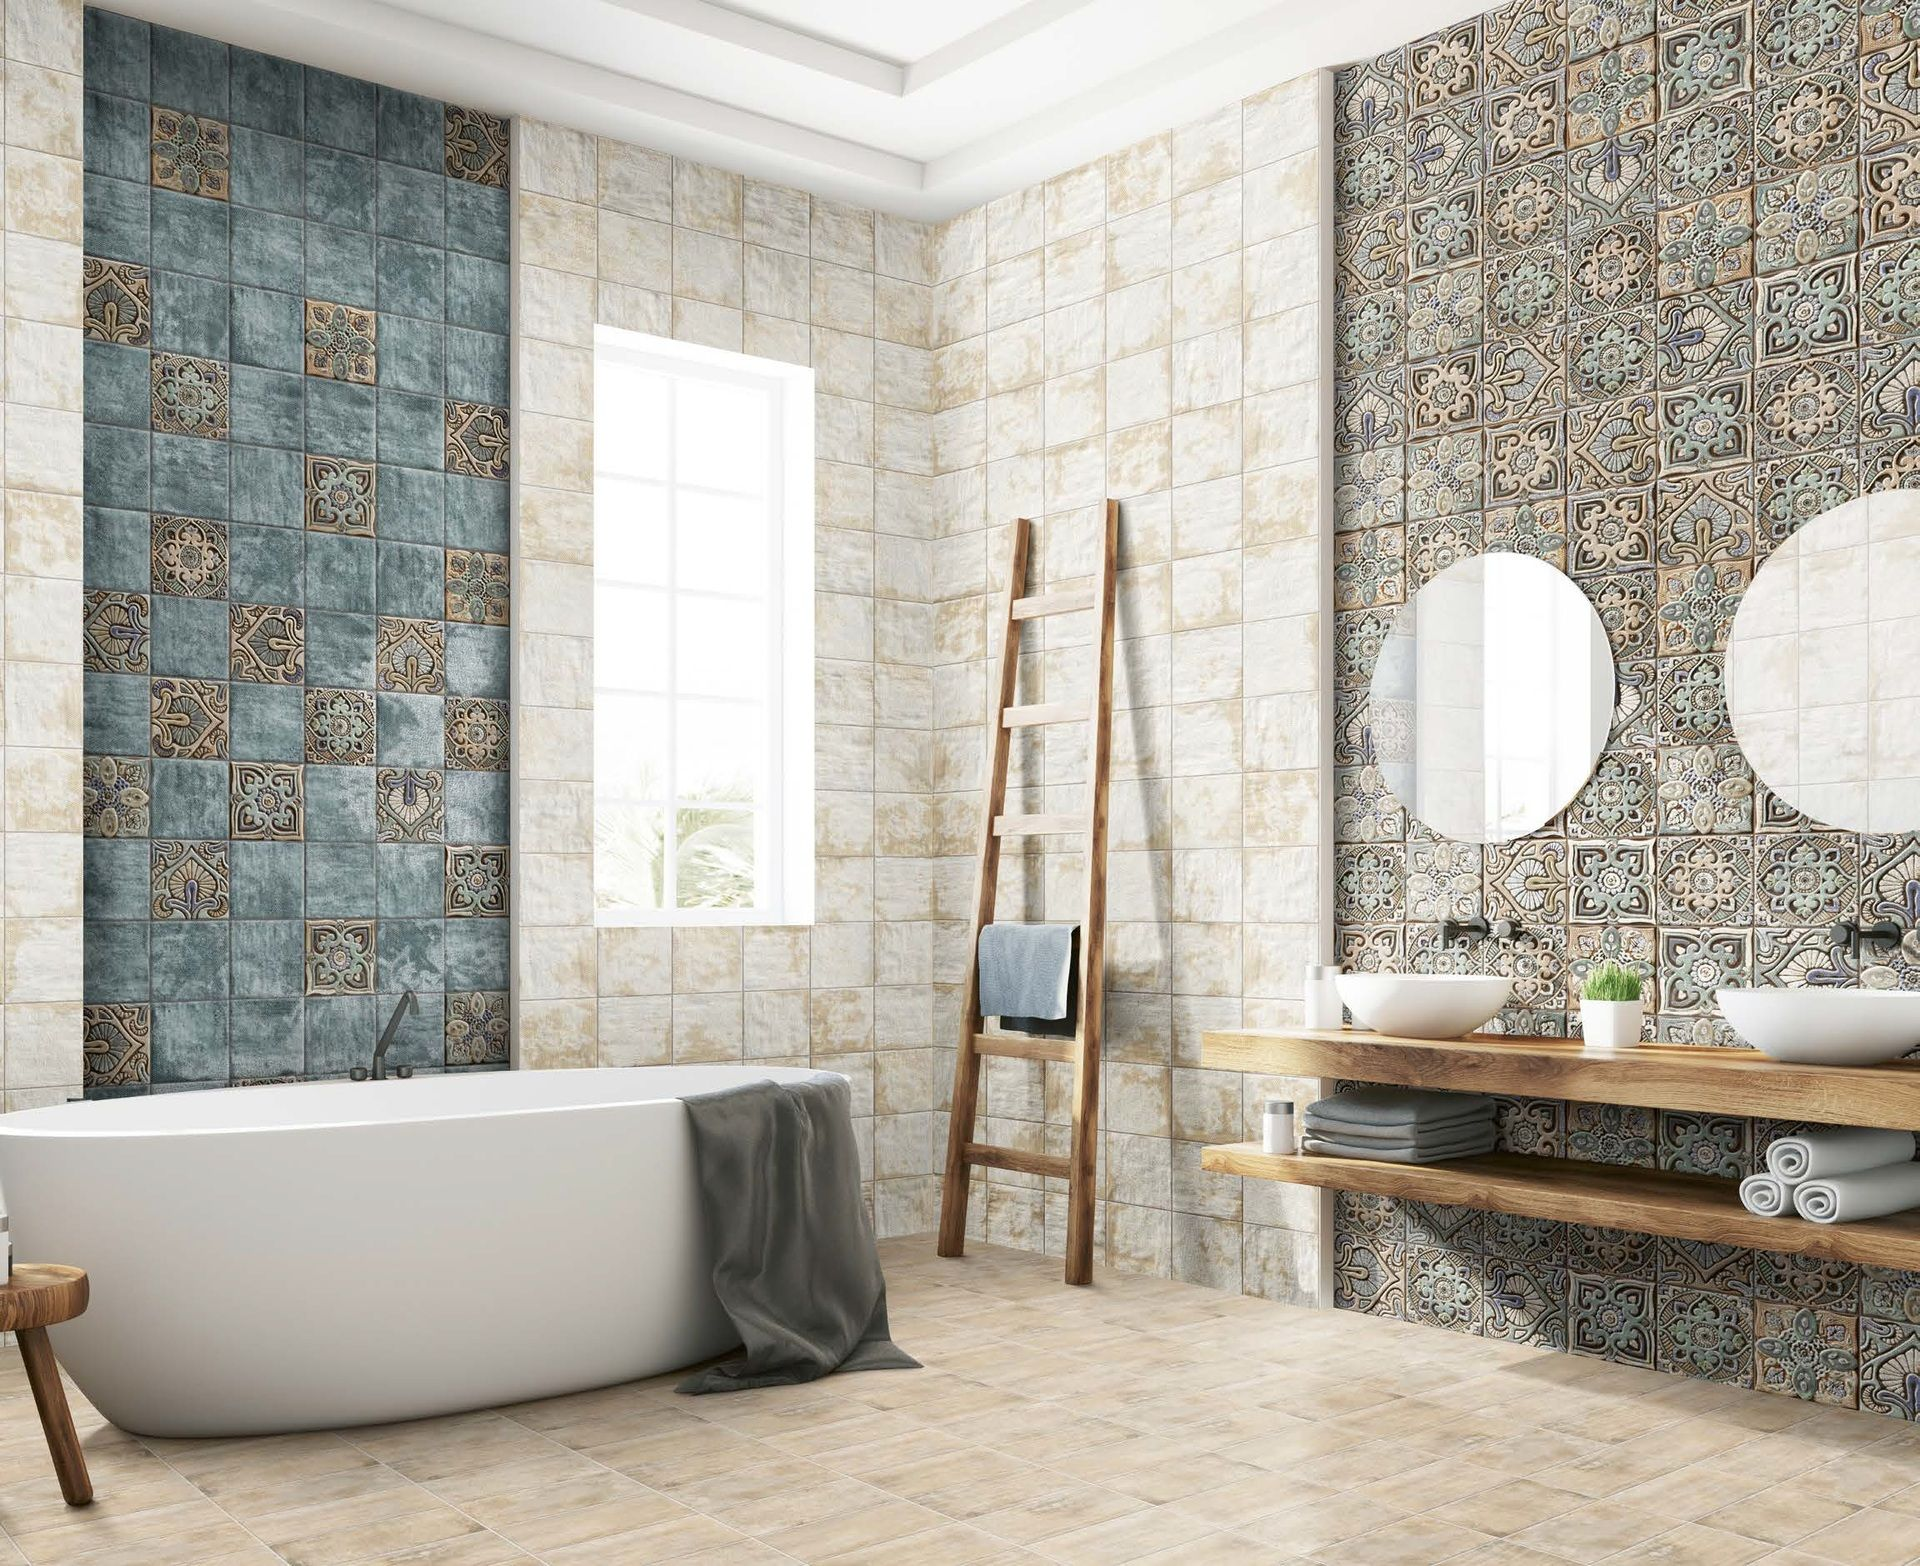 Mandala By Mainzu Tile Expert Distributor Of Italian And Spanish Tiles Spanish Photo 1 Wande Boden